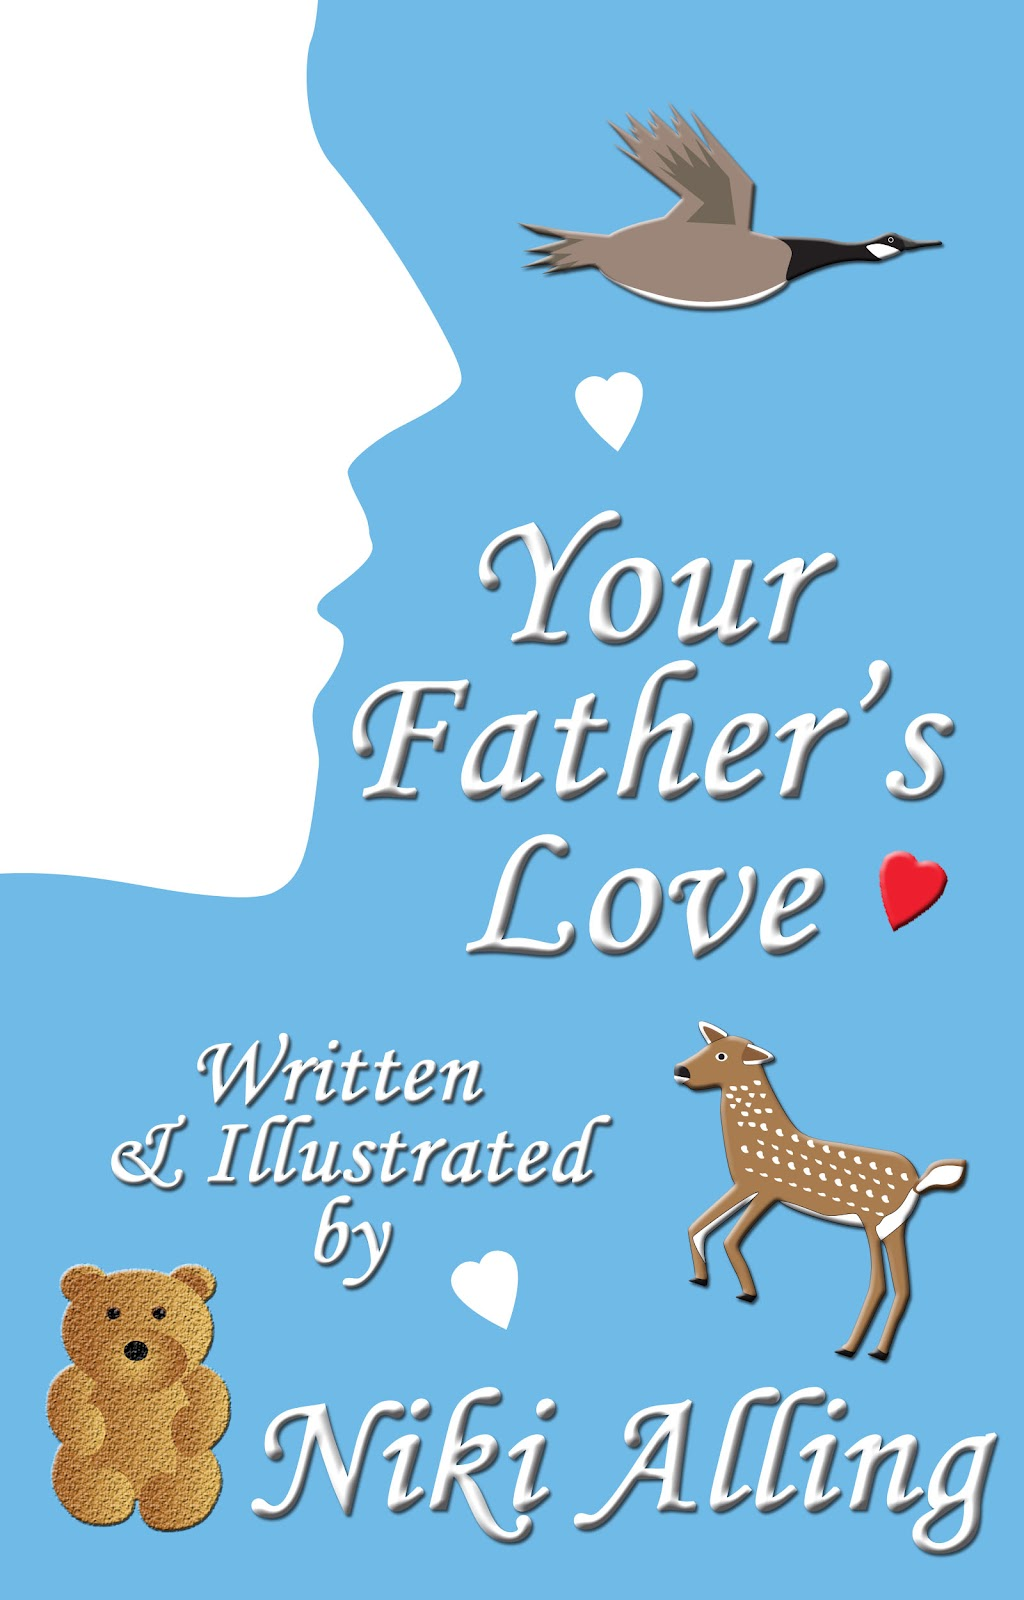 http://www.amazon.com/Your-Fathers-Love-Parents-book-ebook/dp/B007ZVGTIE/ref=la_B005O3KMI8_1_2_title_0_main?s=books&ie=UTF8&qid=1402533528&sr=1-2